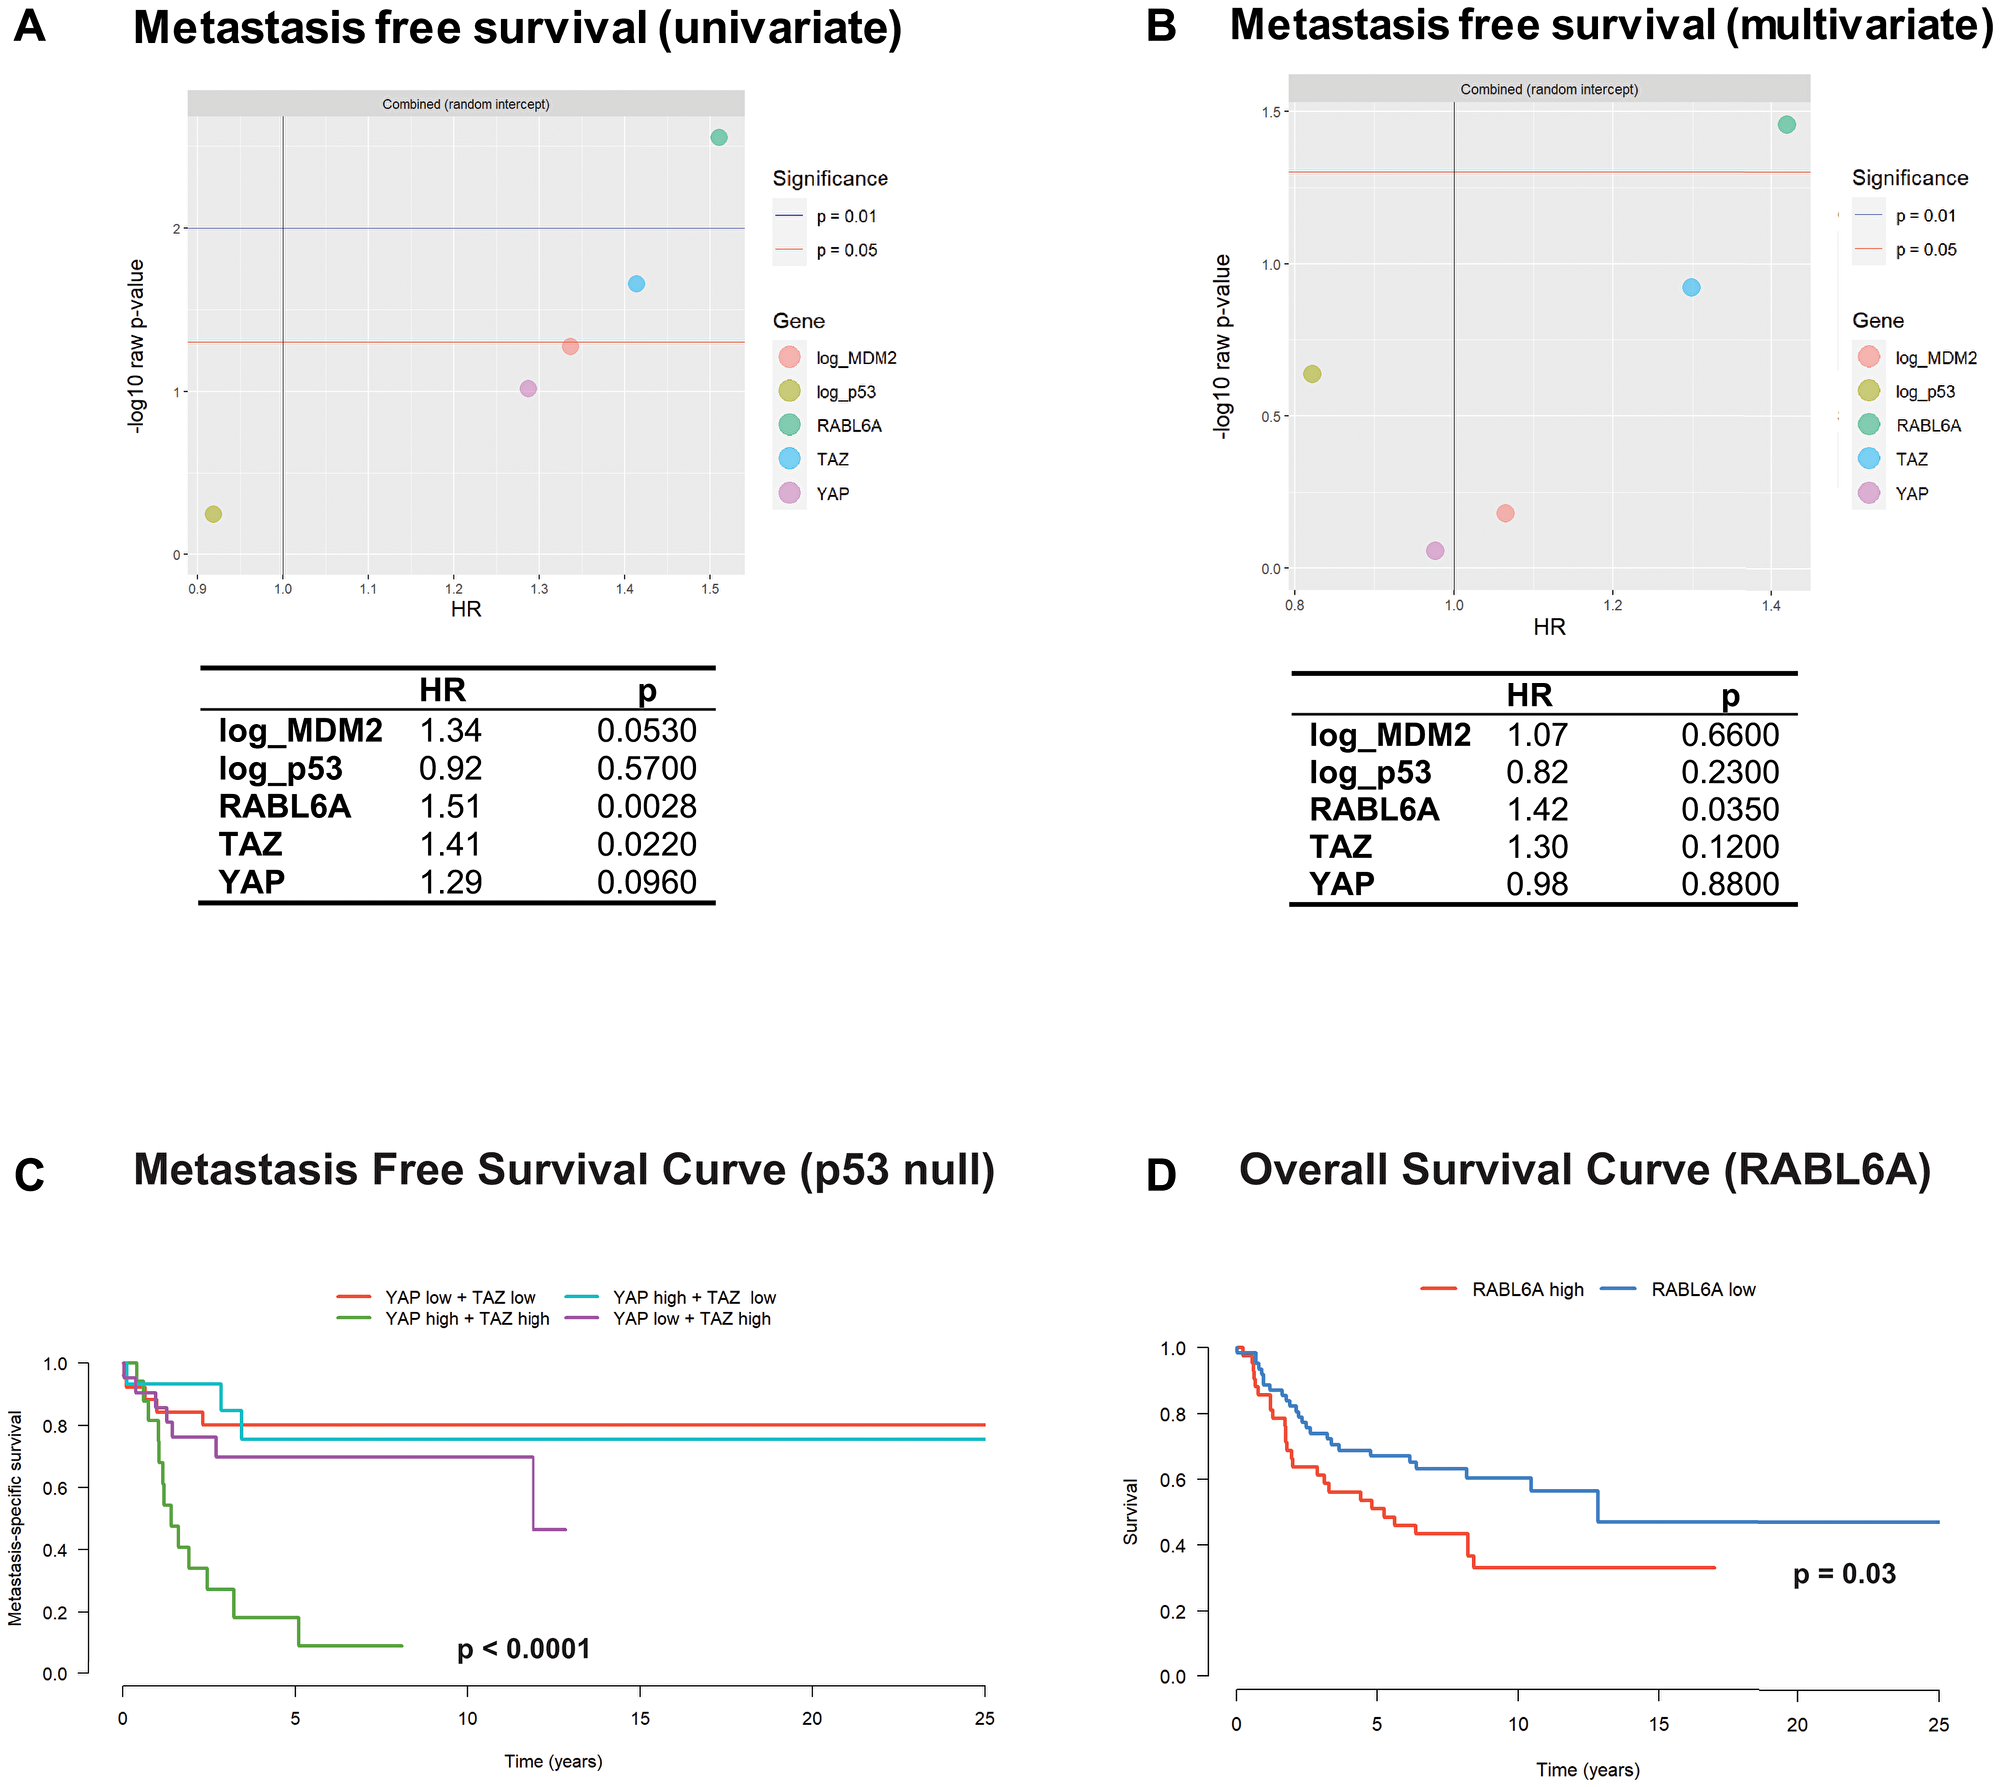 RABL6A and the Hippo pathway axis predict metastasis free survival.